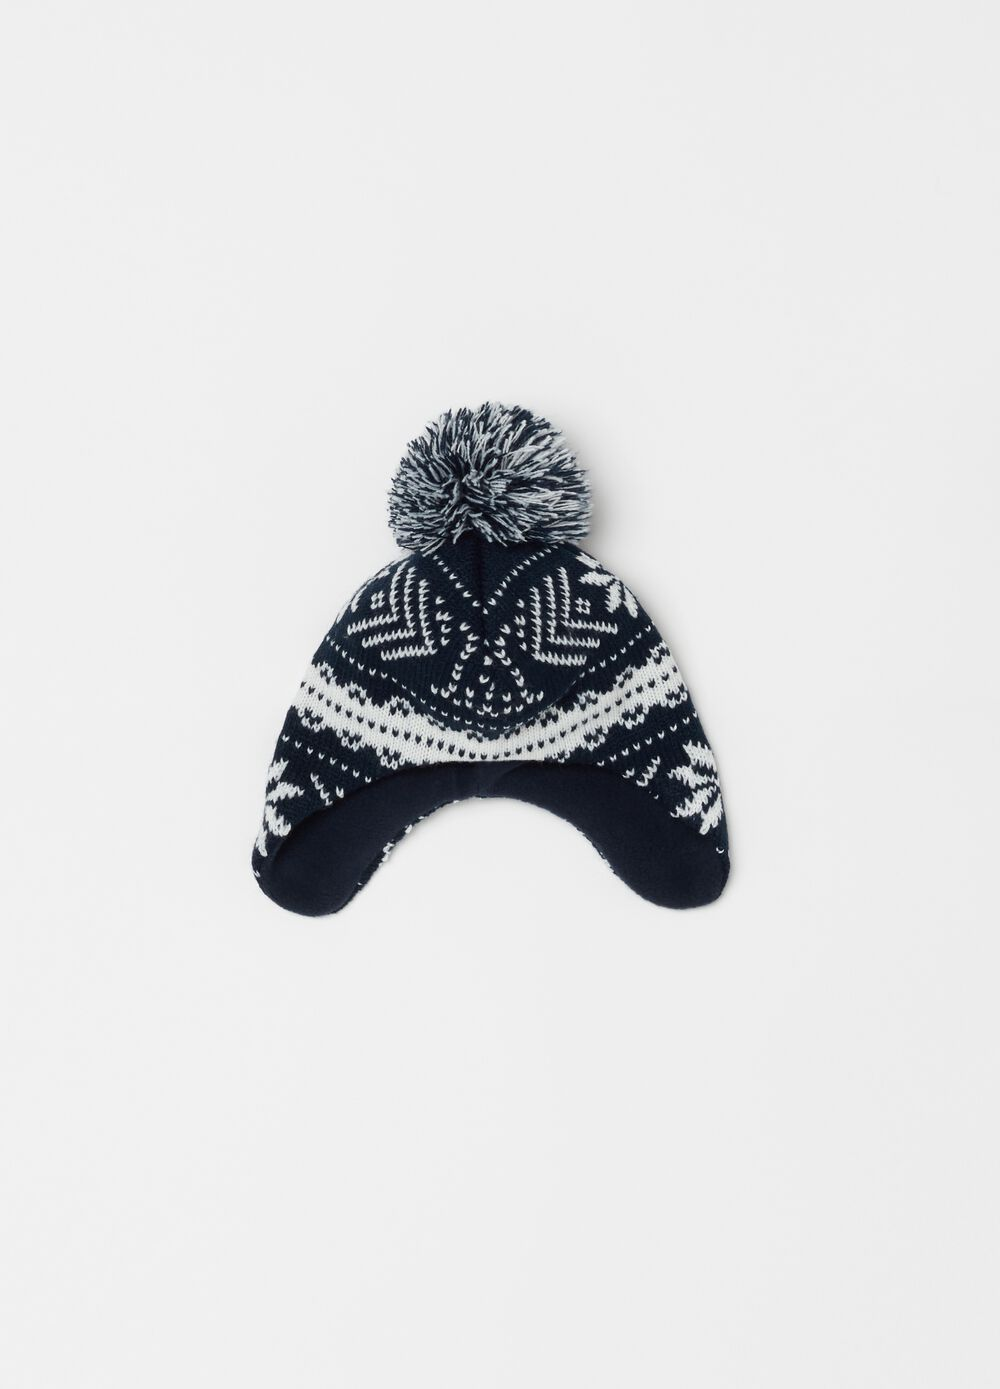 Knitted hat with geometric pattern